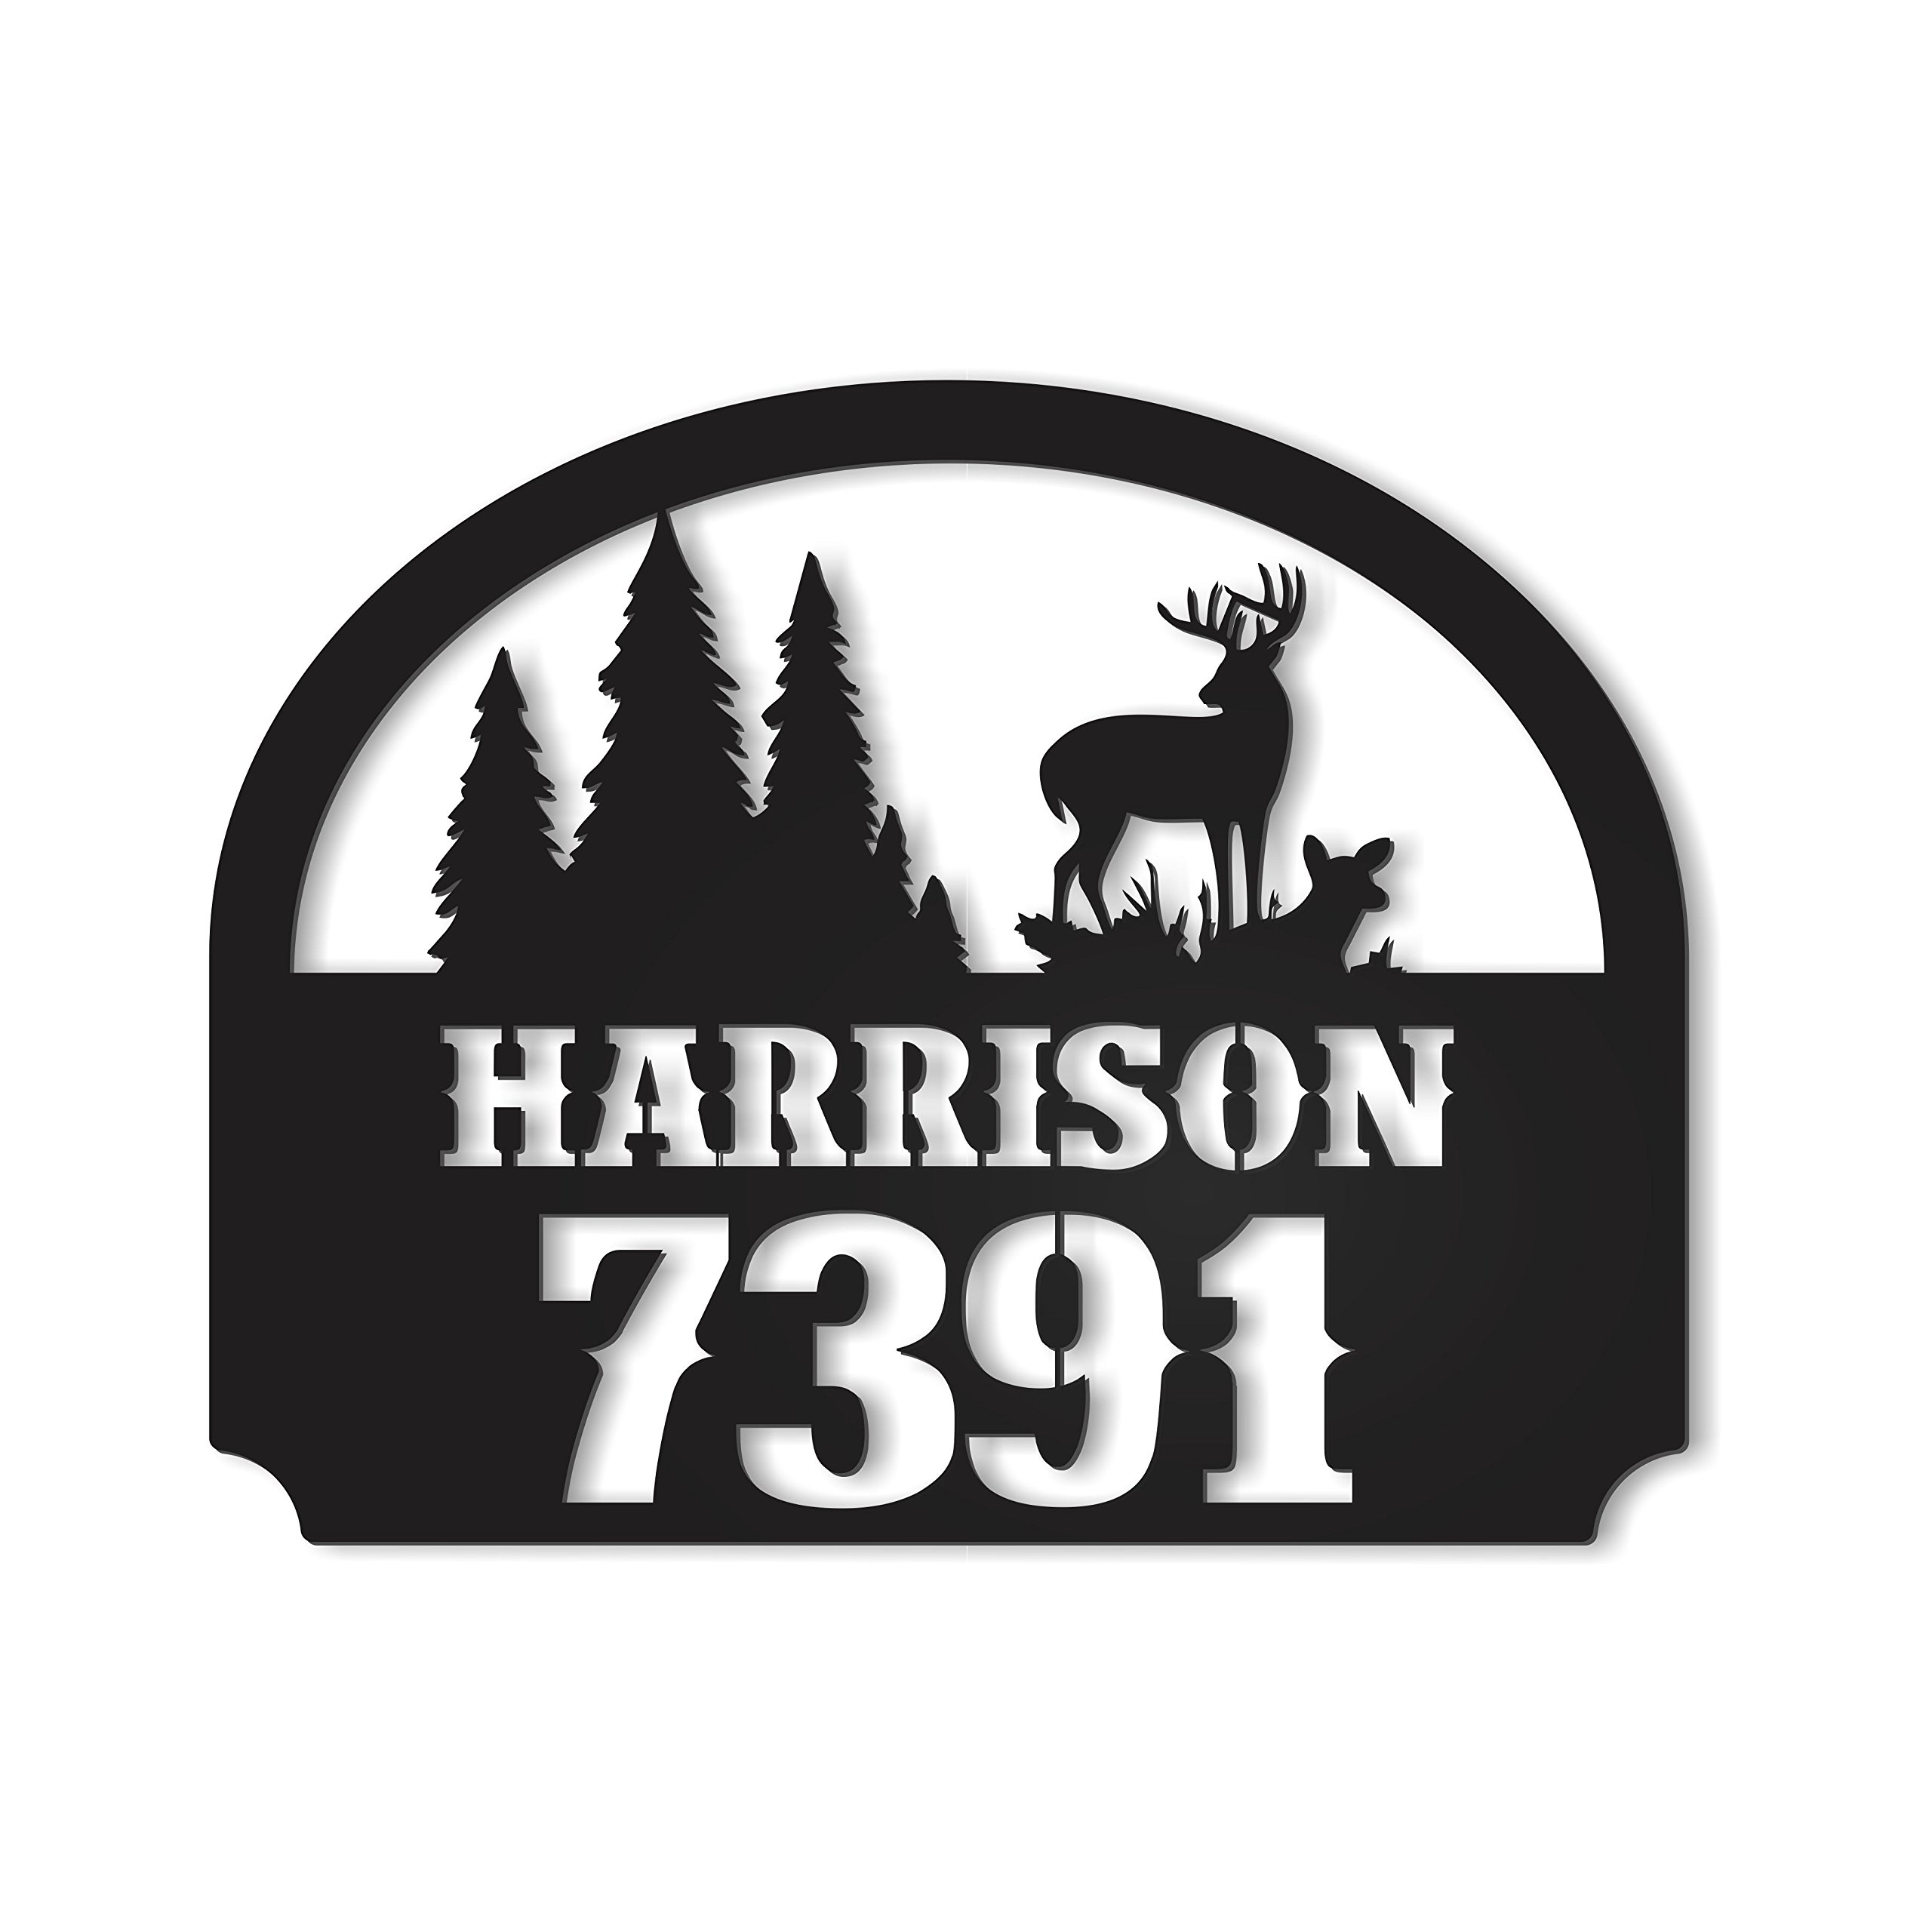 Outdoor Metal Personalized Address Sign With Deer Scene